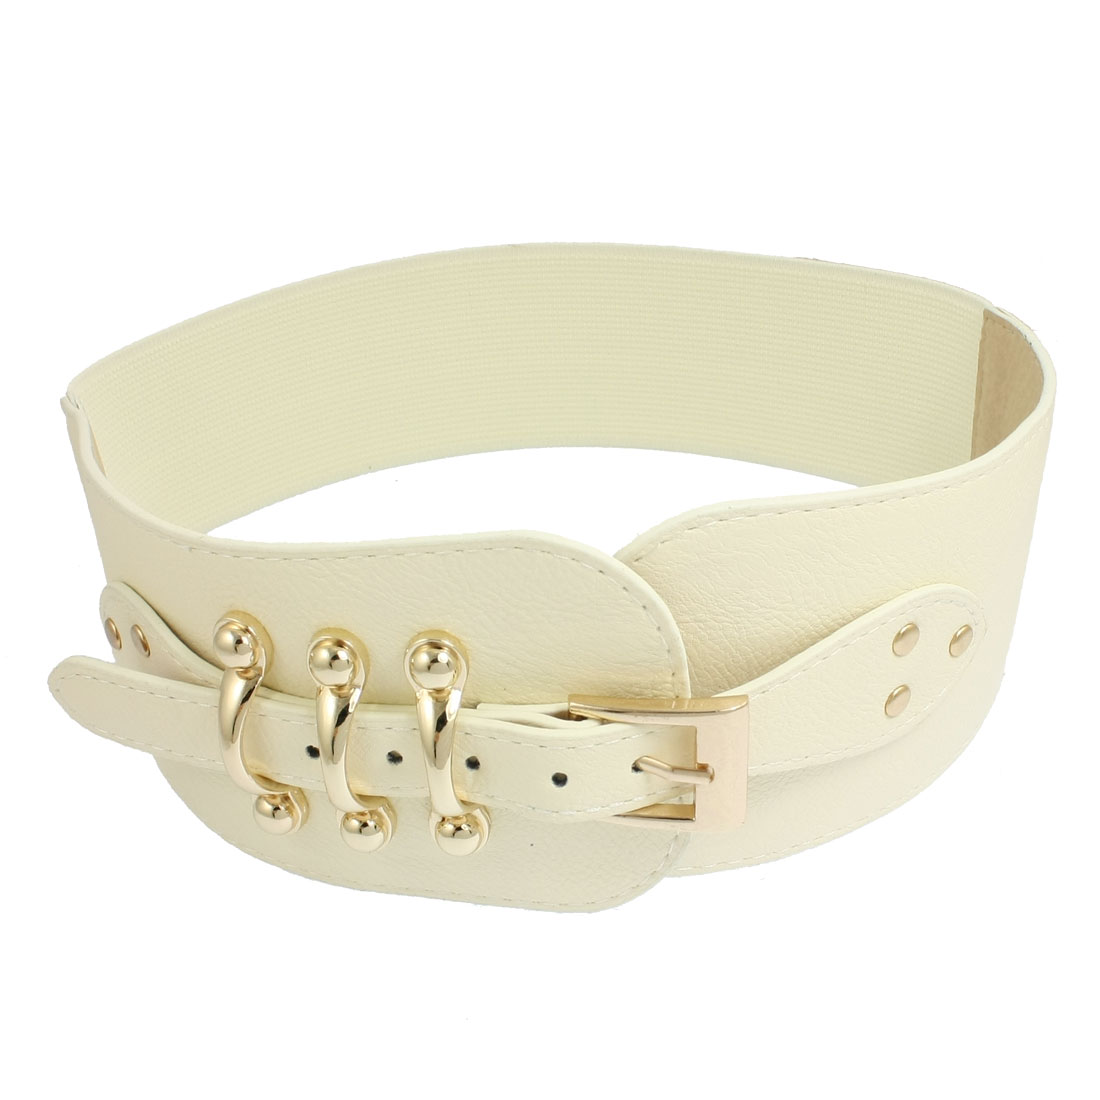 "Lady Gold Tone Single Pin Faux Leather 3.5"" Width Off White Elastic Belt"